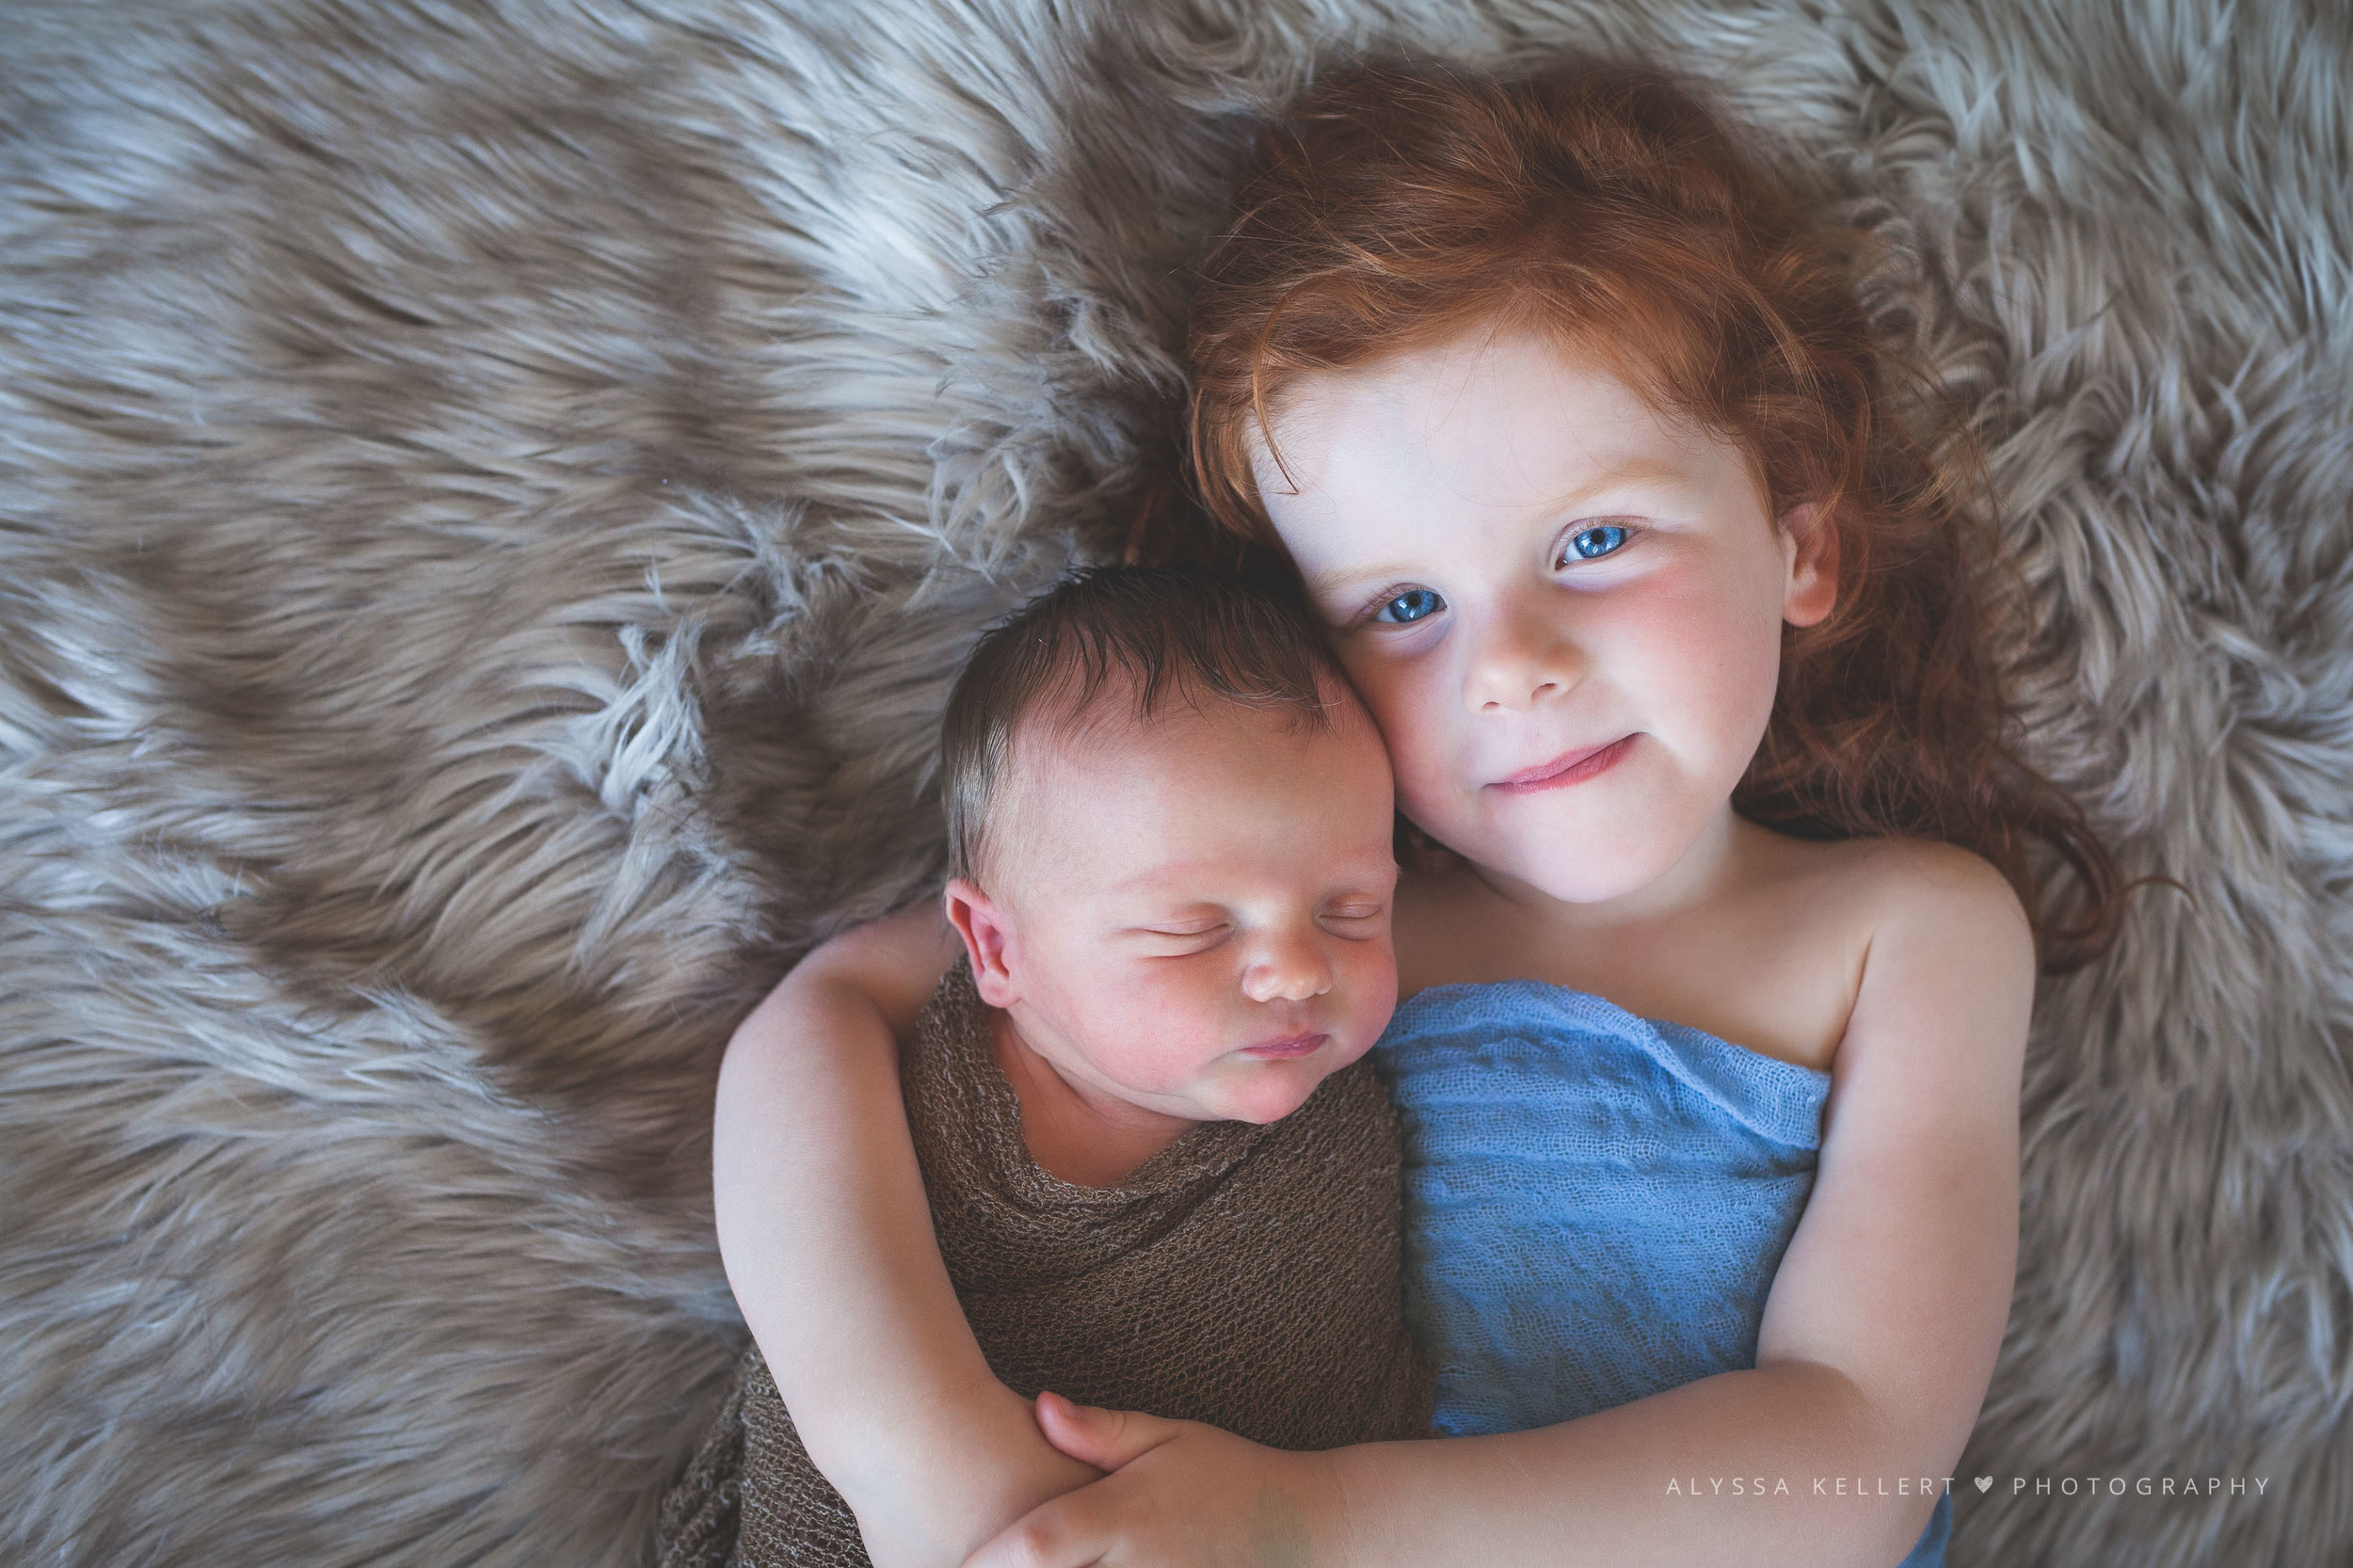 newborn-photography-lifestyle-photographer-coquitlam-vancouver-baby-sibling-sister-brother